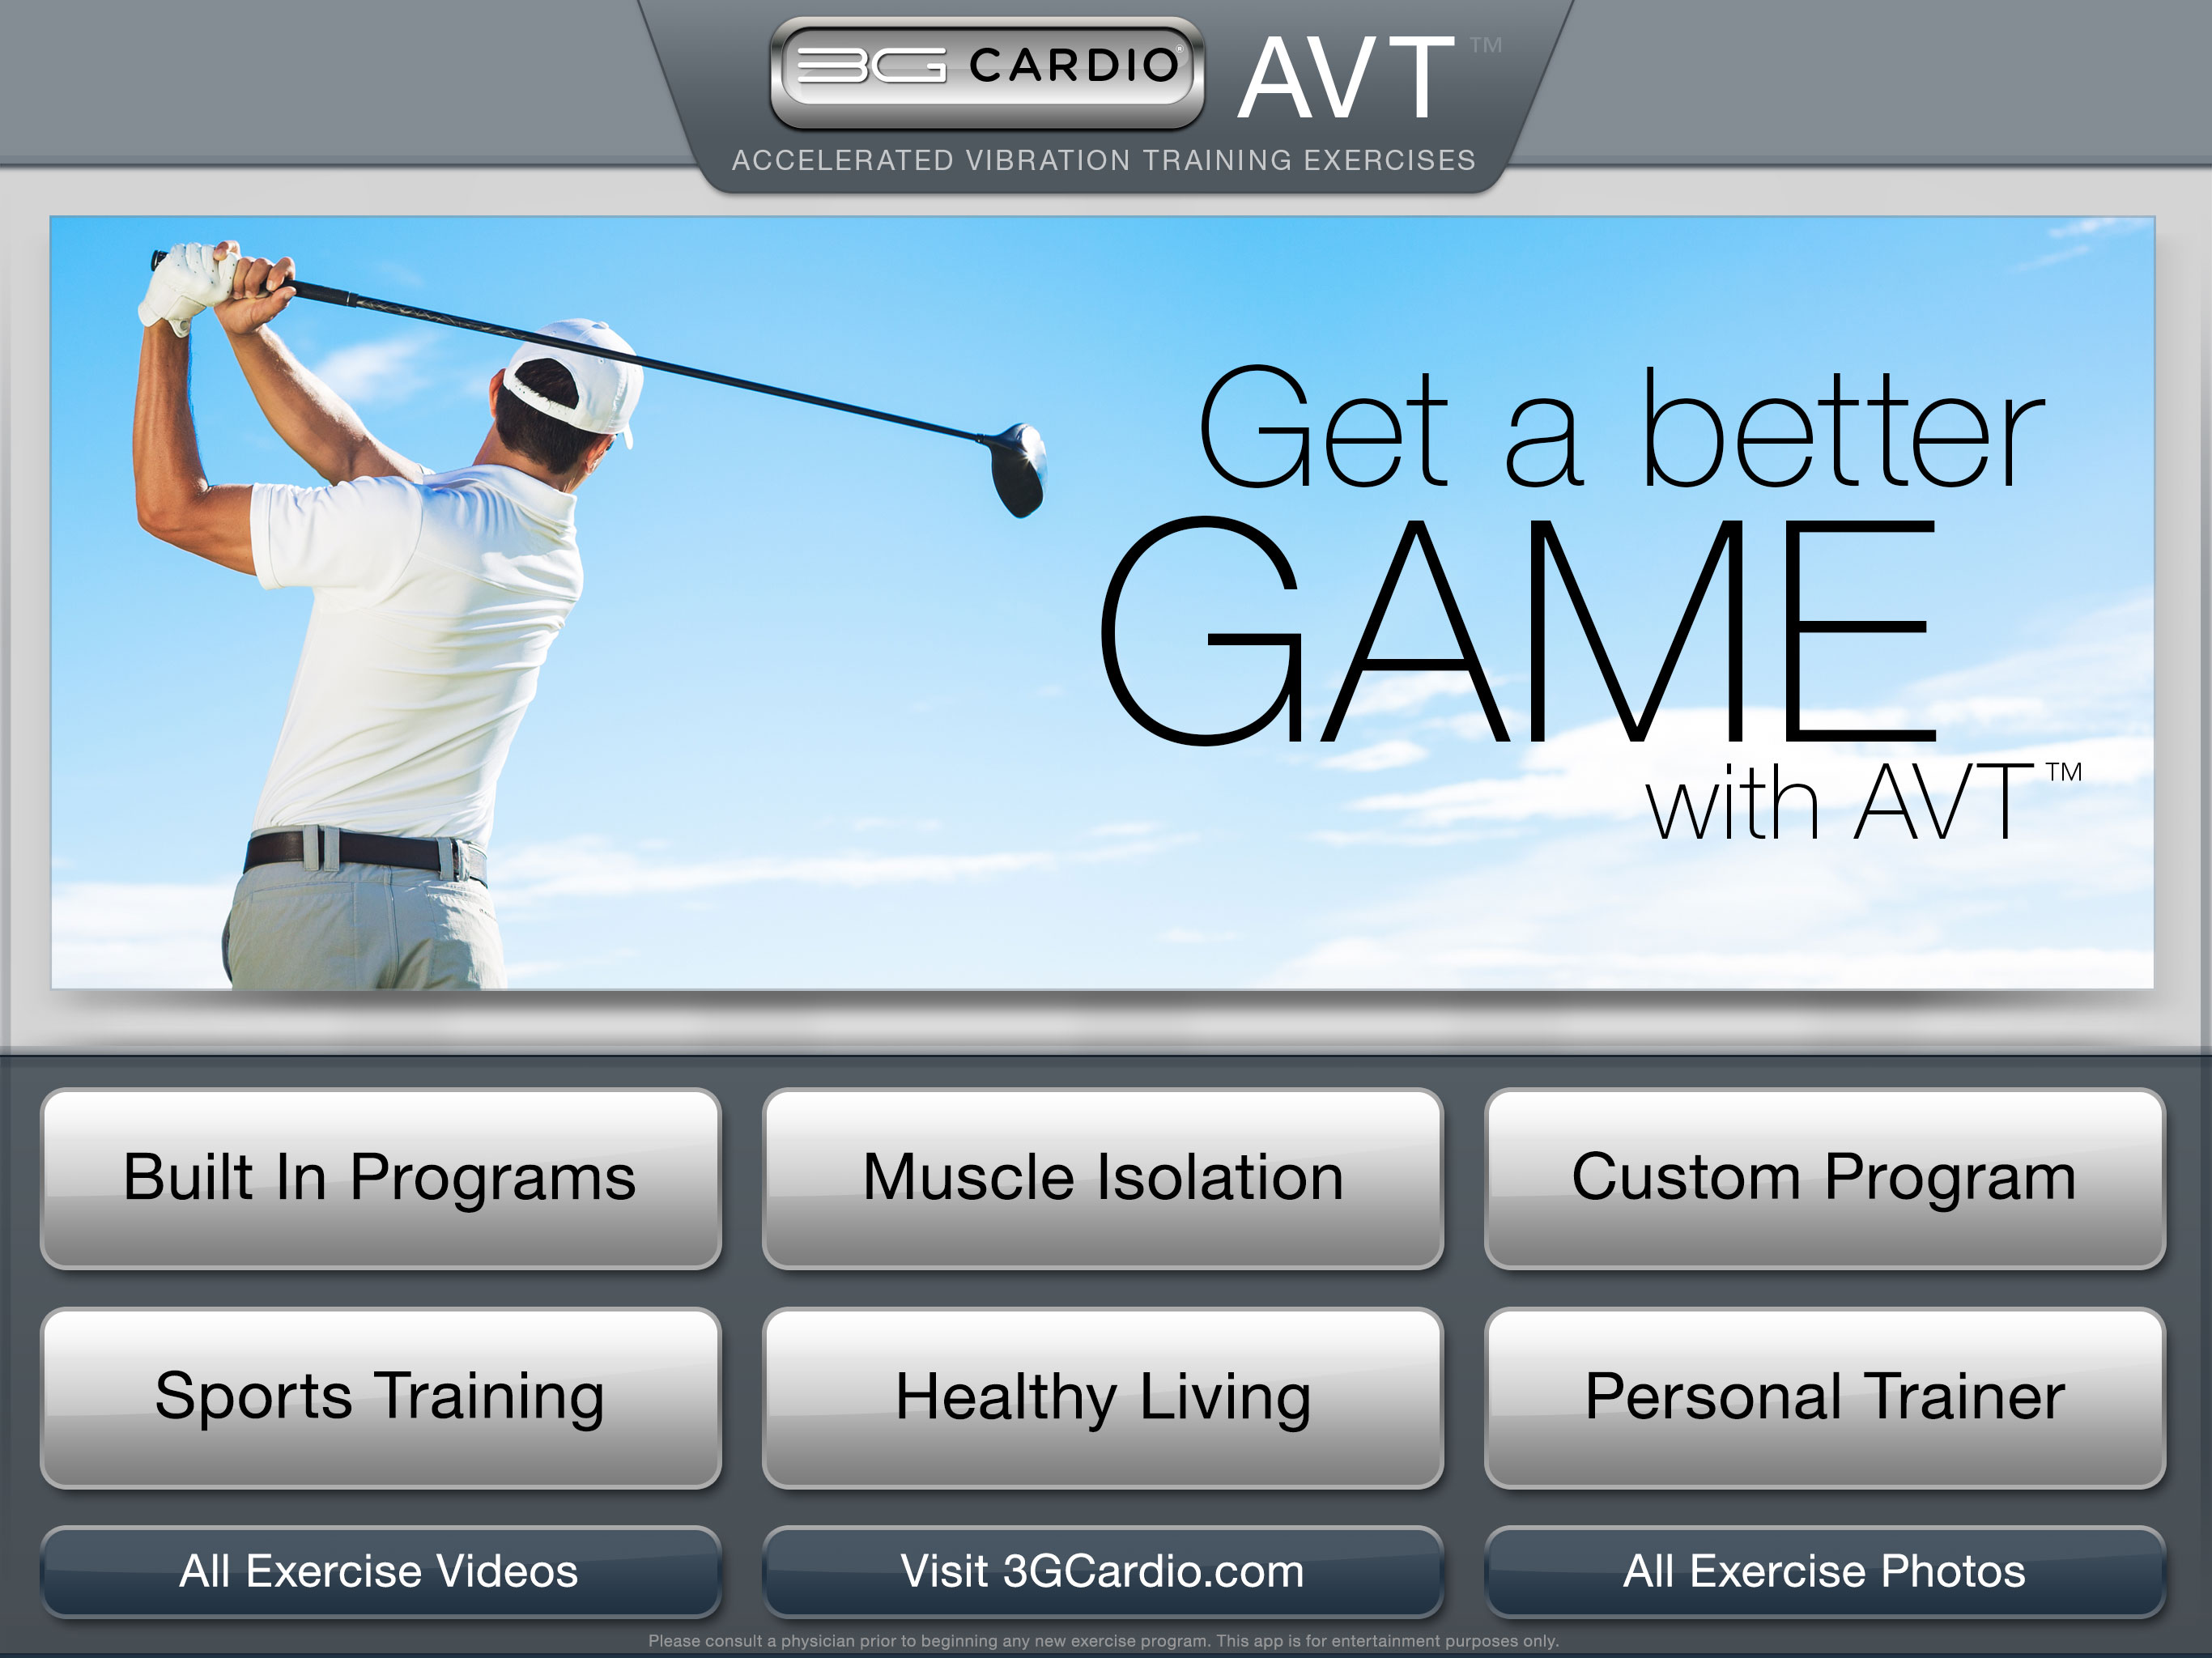 3G Cardio has awesome App for Vibration Training - 3G Cardio